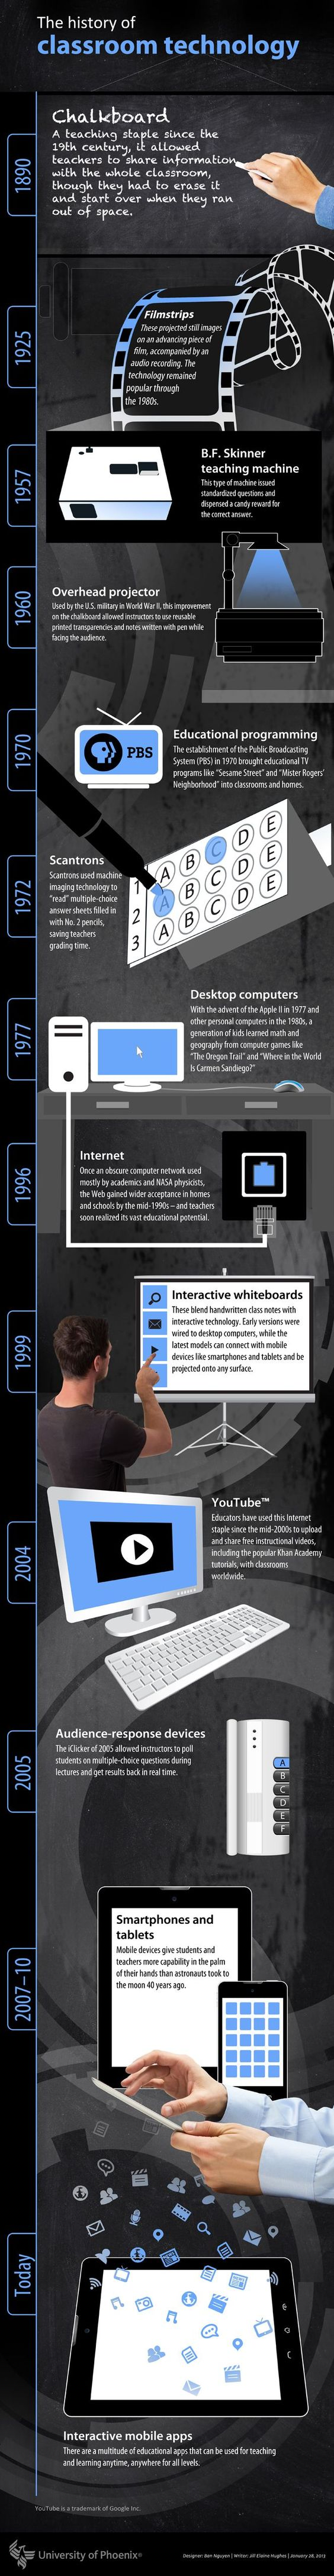 History of classroom technology Infographic, http://www.learndash.com/history-of-classroom-technology-infographic/